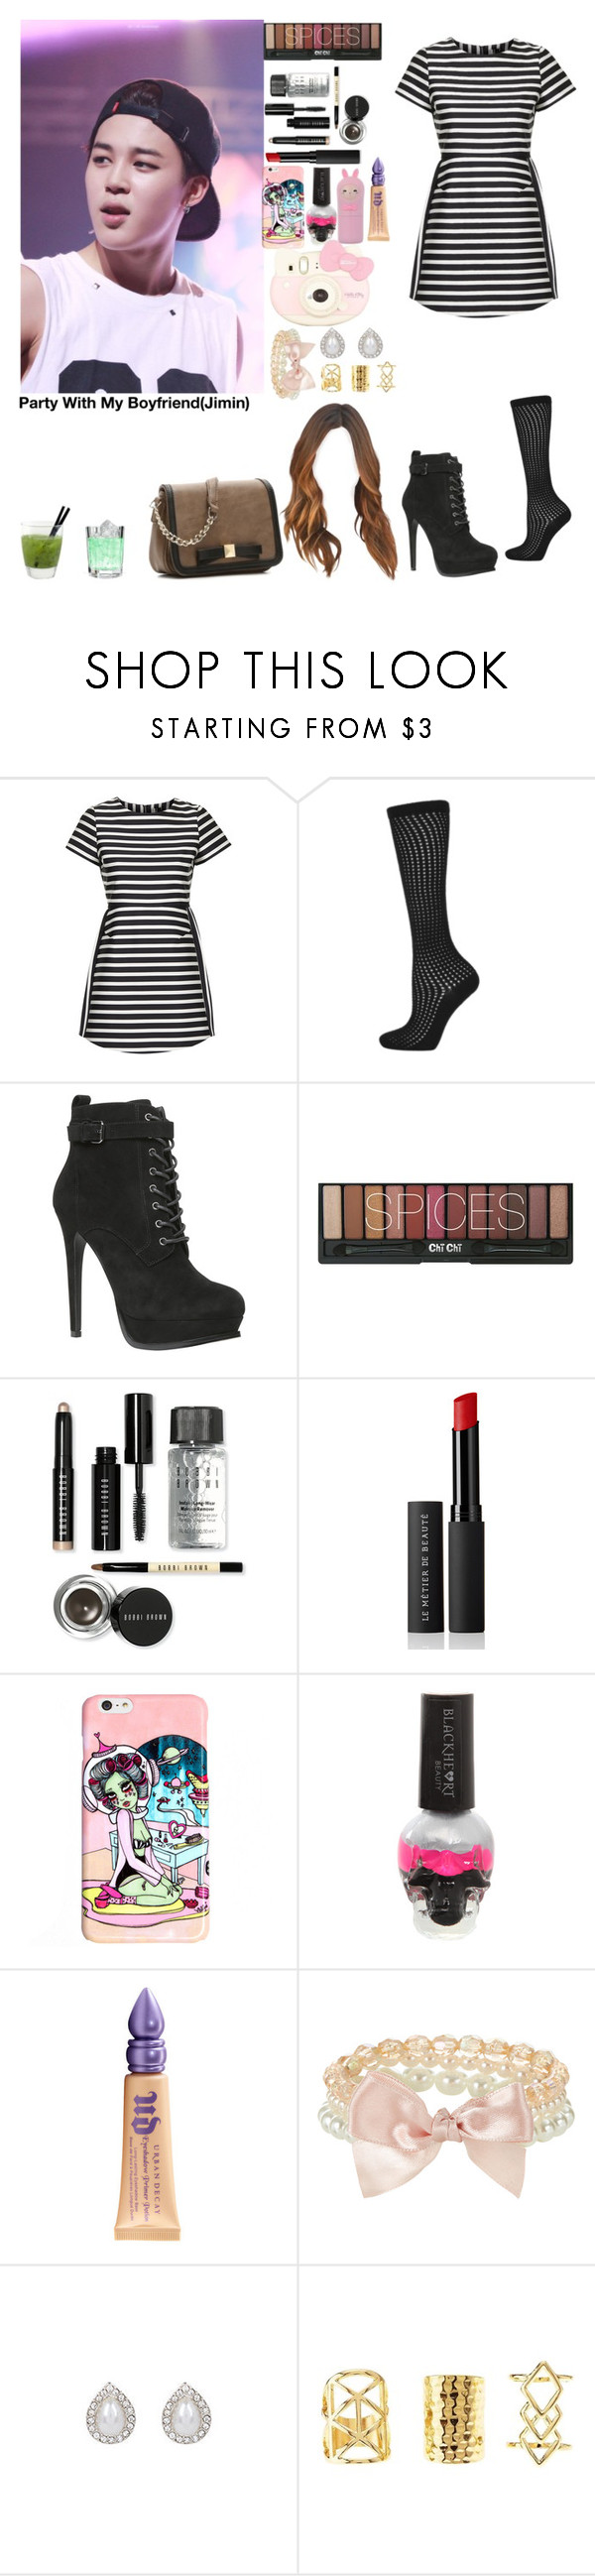 """Untitled #874"" by manuuhwang ❤ liked on Polyvore featuring Topshop, ALDO, Bobbi Brown Cosmetics, Le Métier de Beauté, Urban Decay, Hello Kitty, Accessorize, Charlotte Russe, Kelly & Katie and women's clothing"